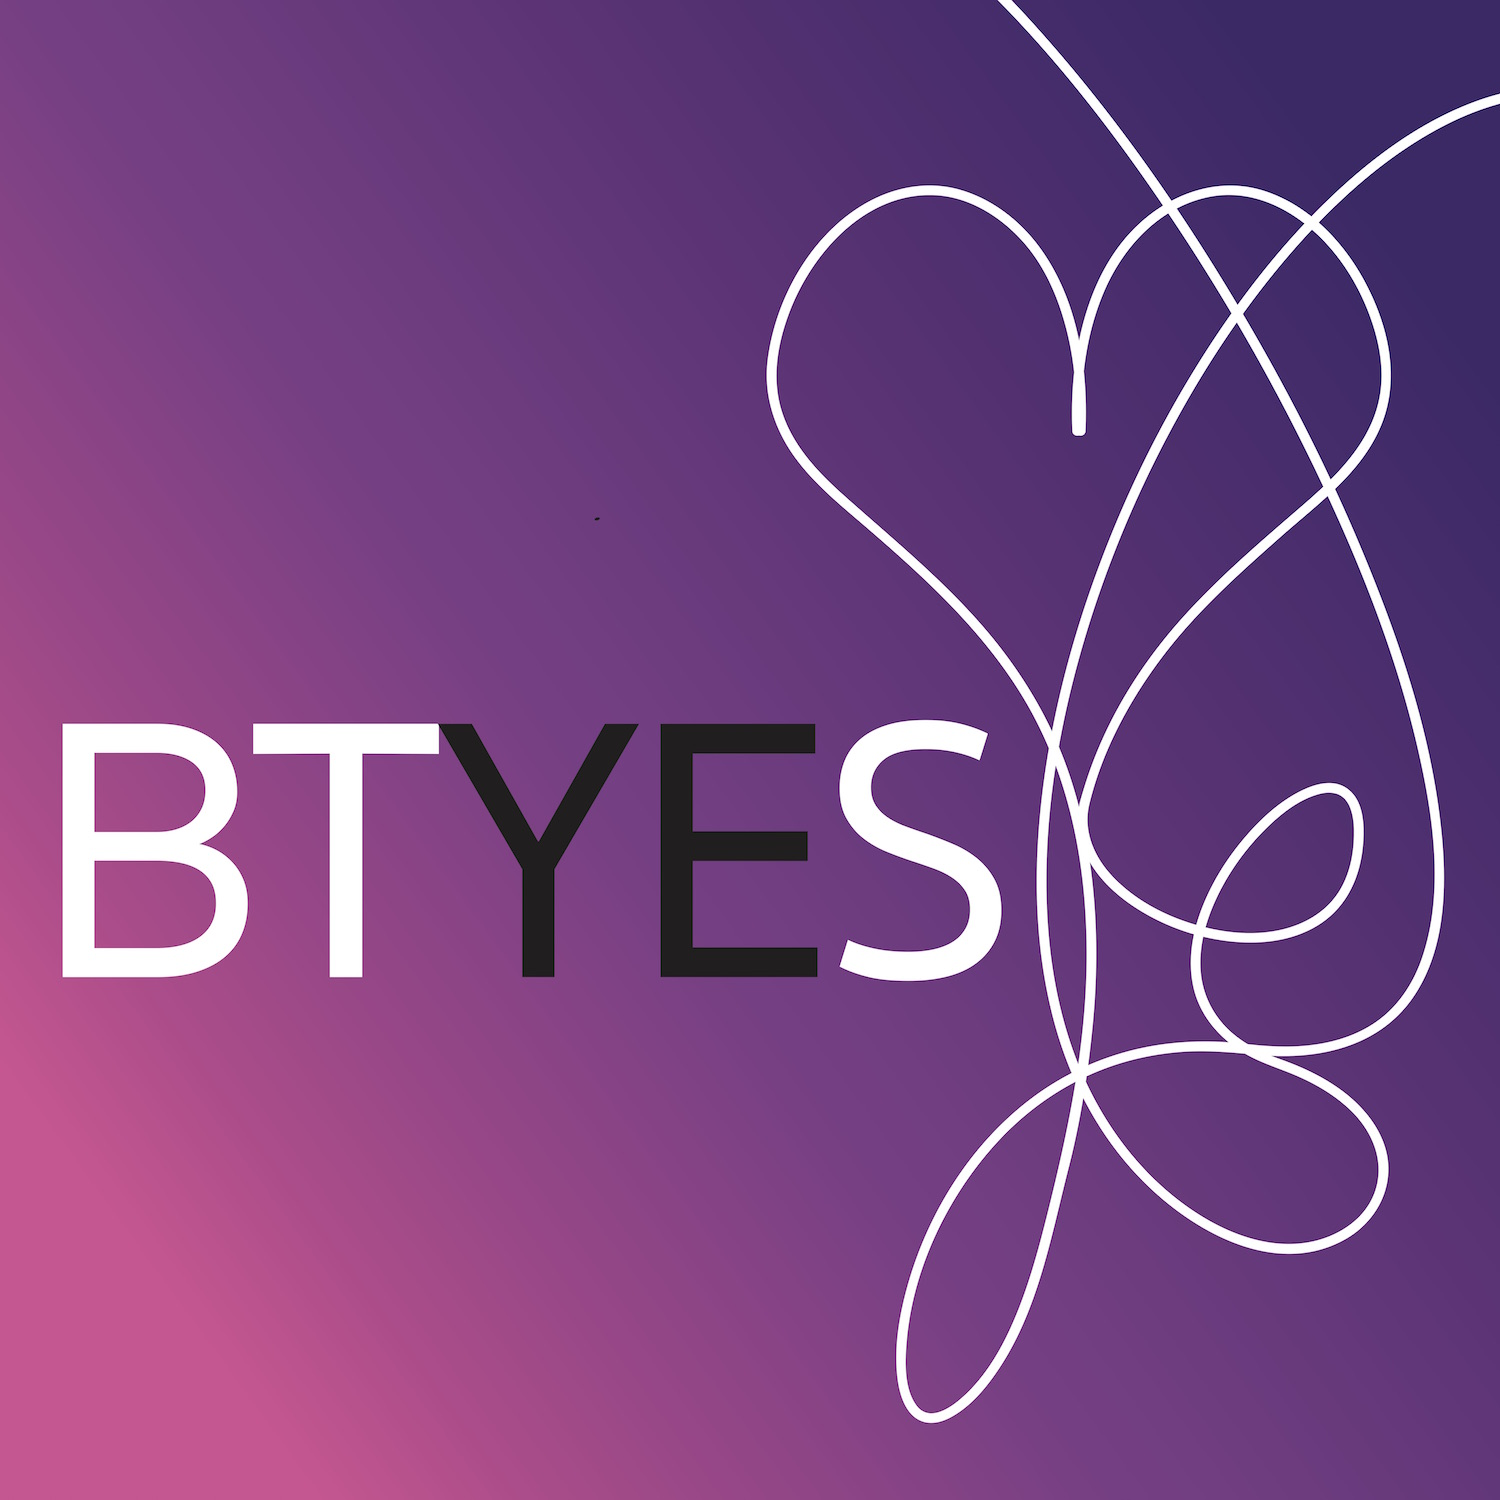 B-T-YES! - A BTS Podcast for ARMY by ARMY show art